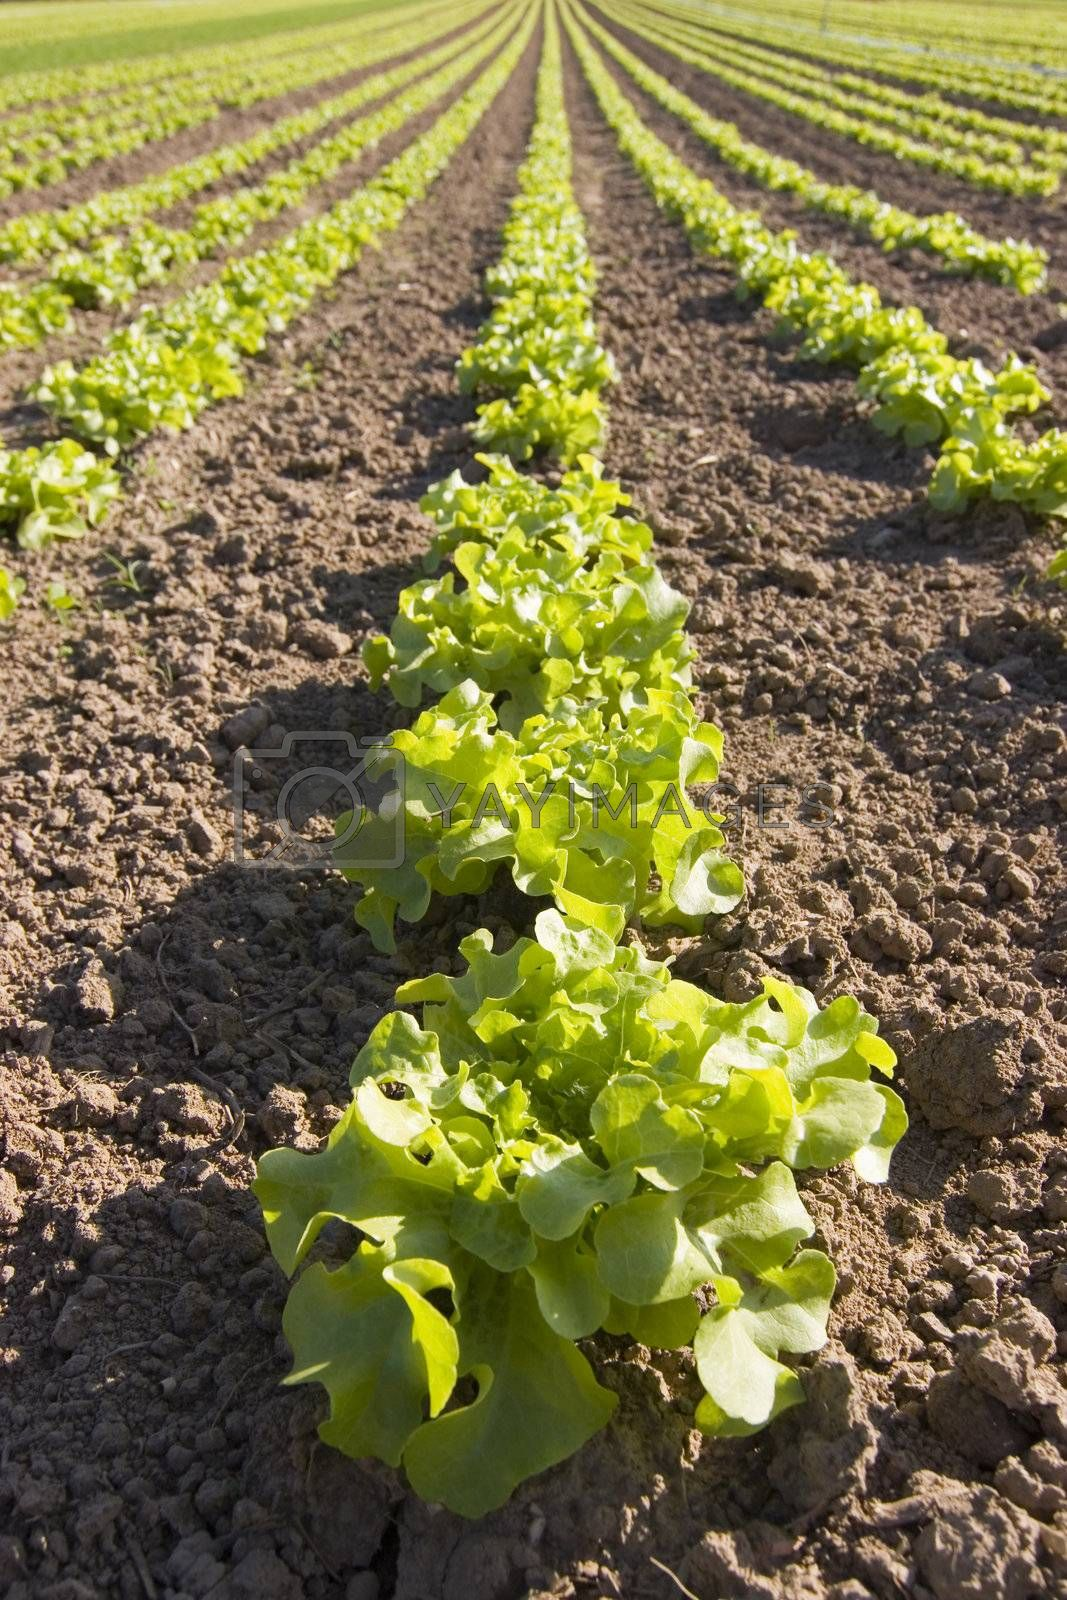 Rows of fresh lettuce in a field